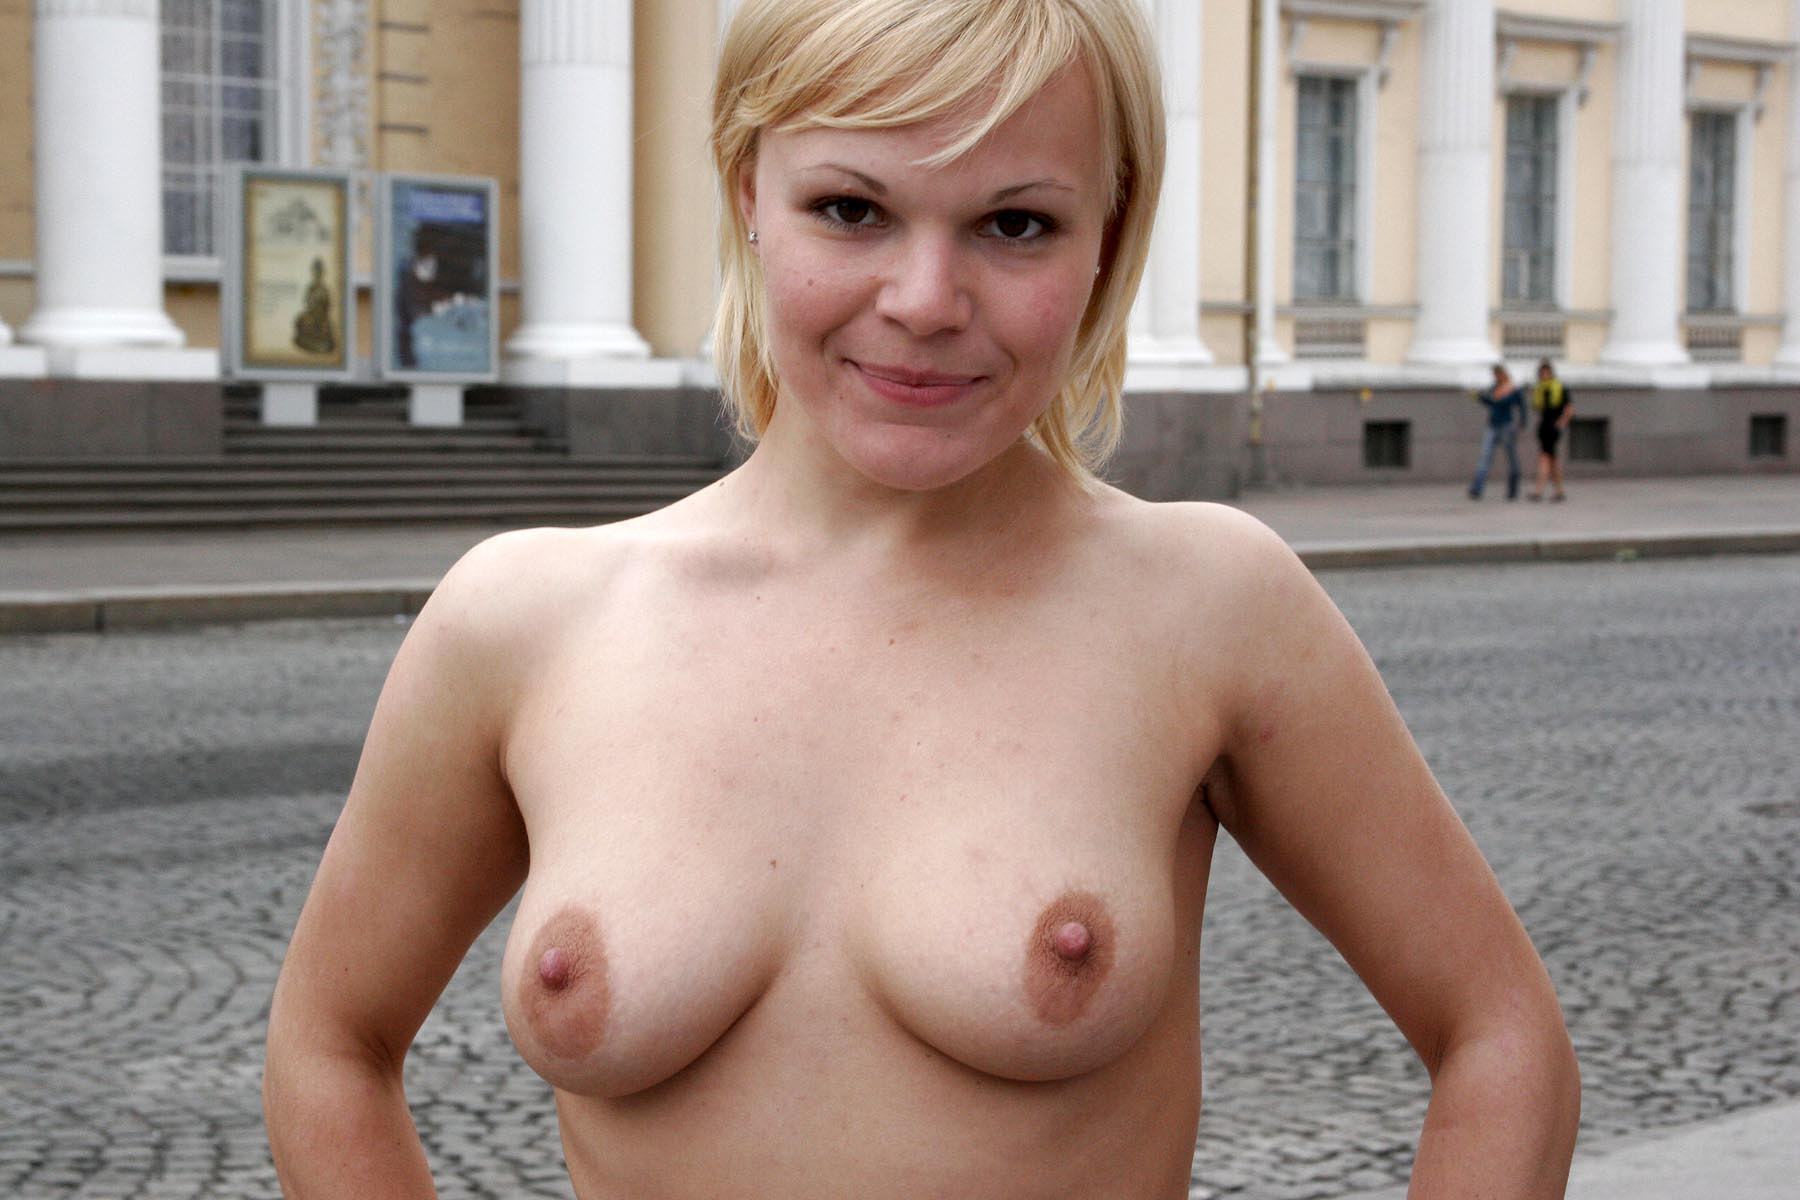 Short Haired Blonde Posing Naked At City Center  Russian -1513